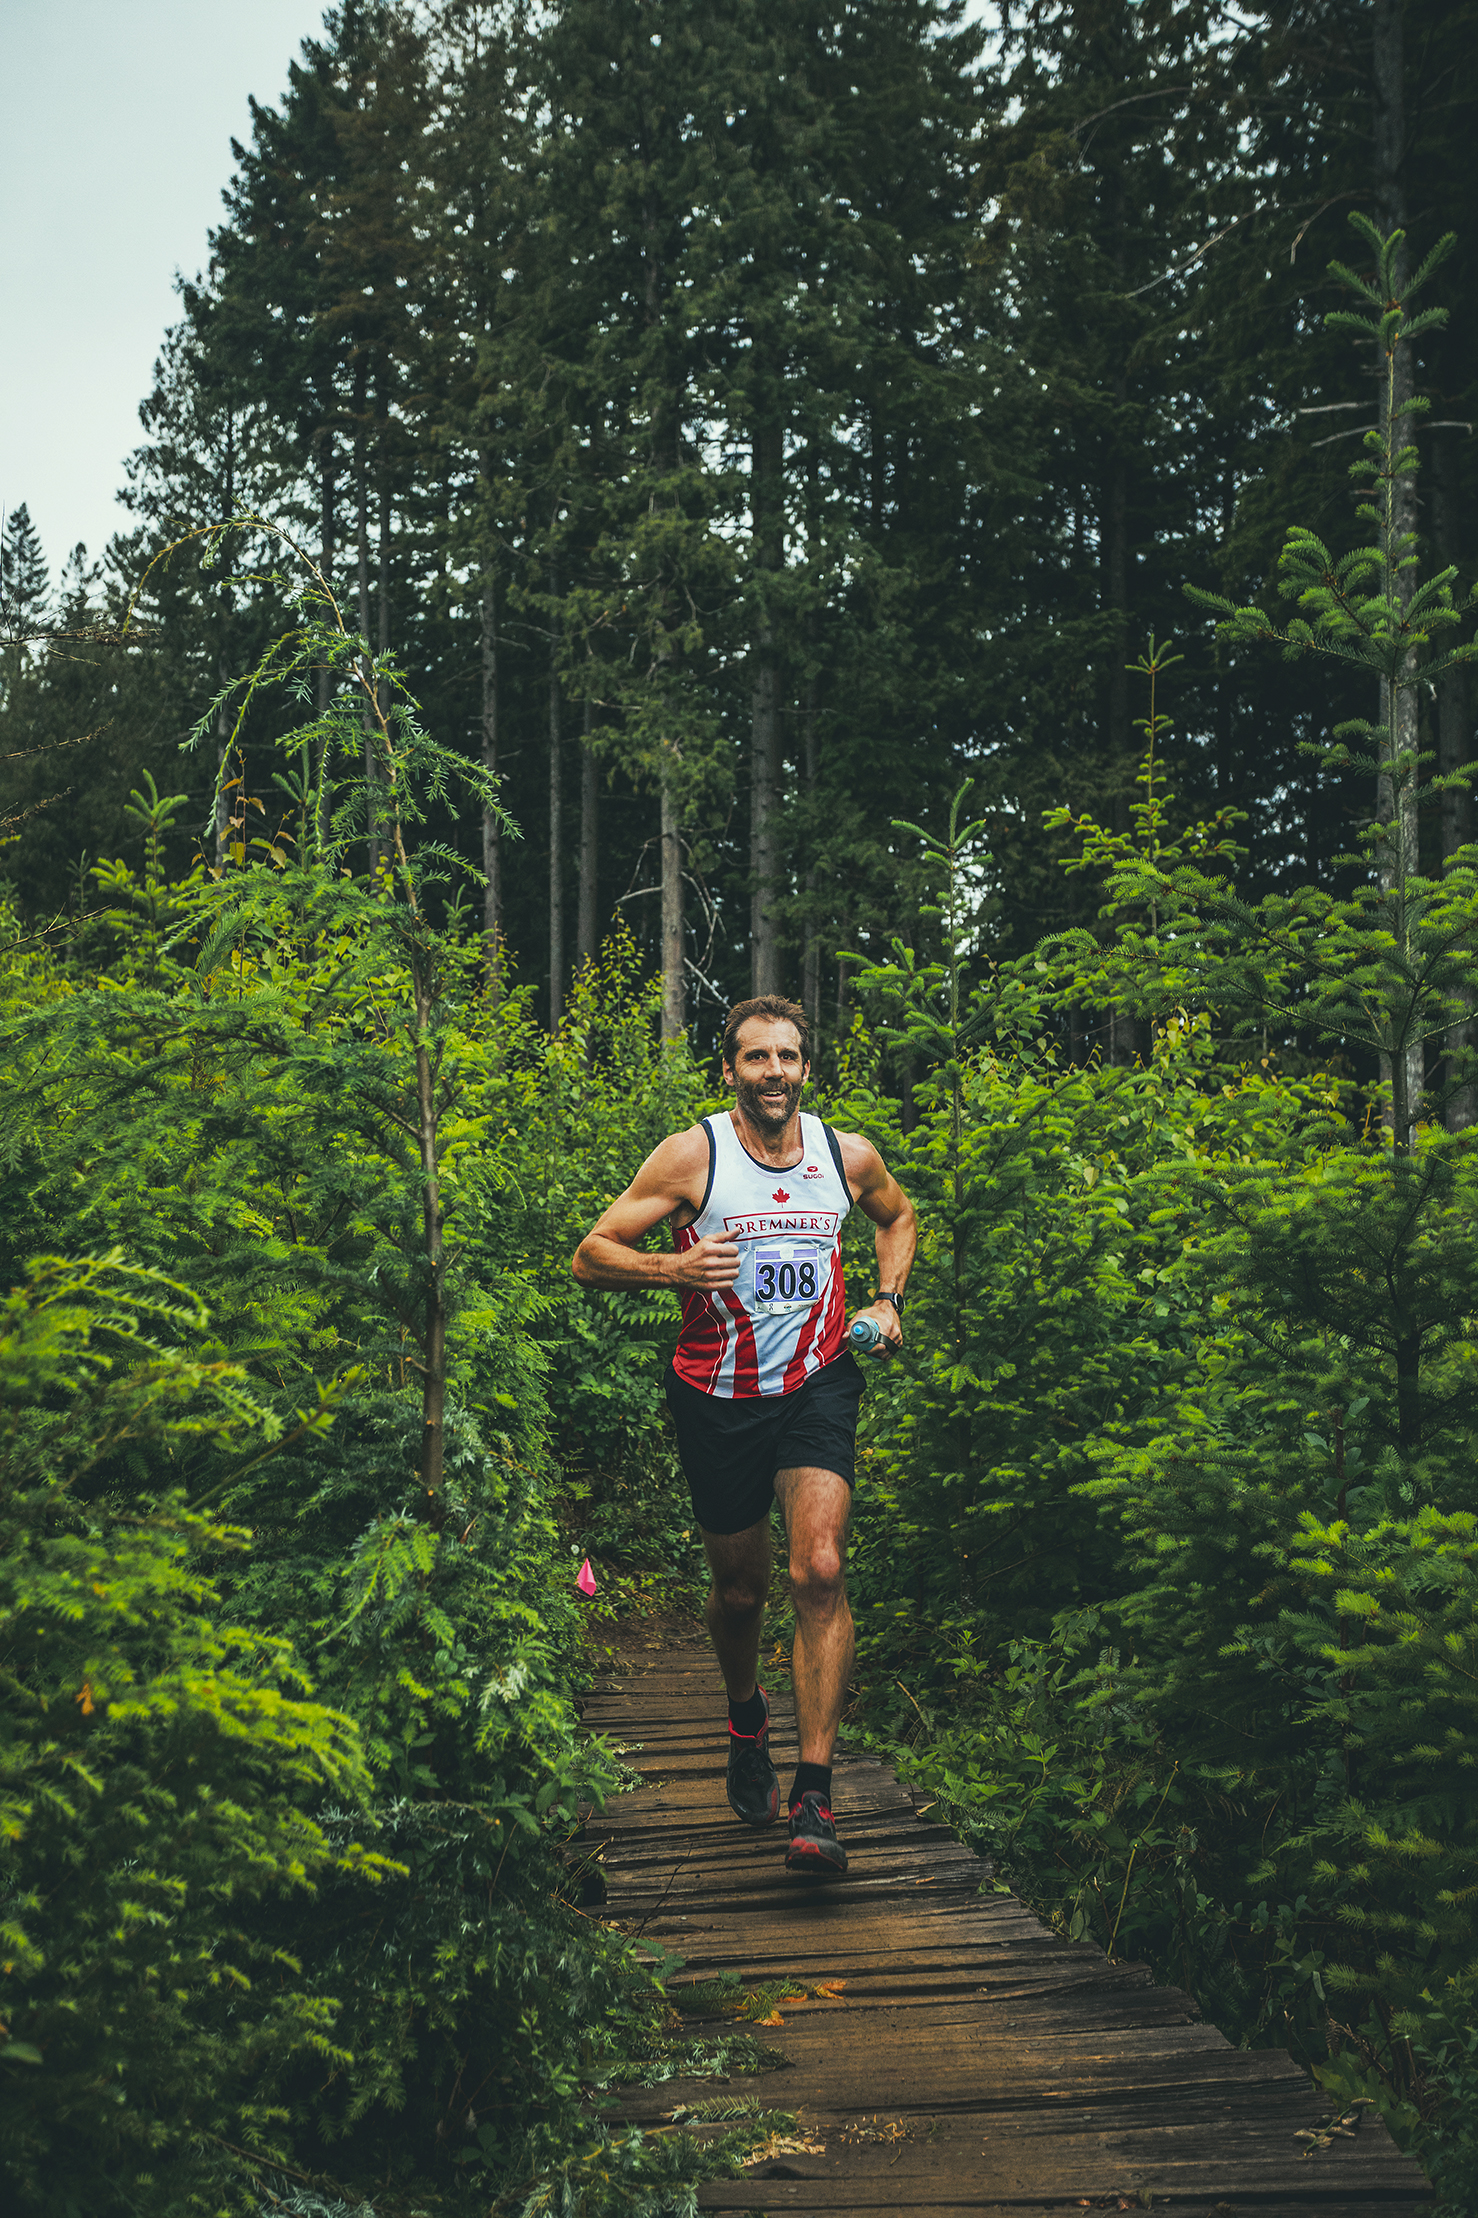 Fraser Valley Trail Races - Bear Mountain - IMG_1459 by Brice Ferre Studio - Vancouver Portrait Adventure and Athlete Photographer.jpg